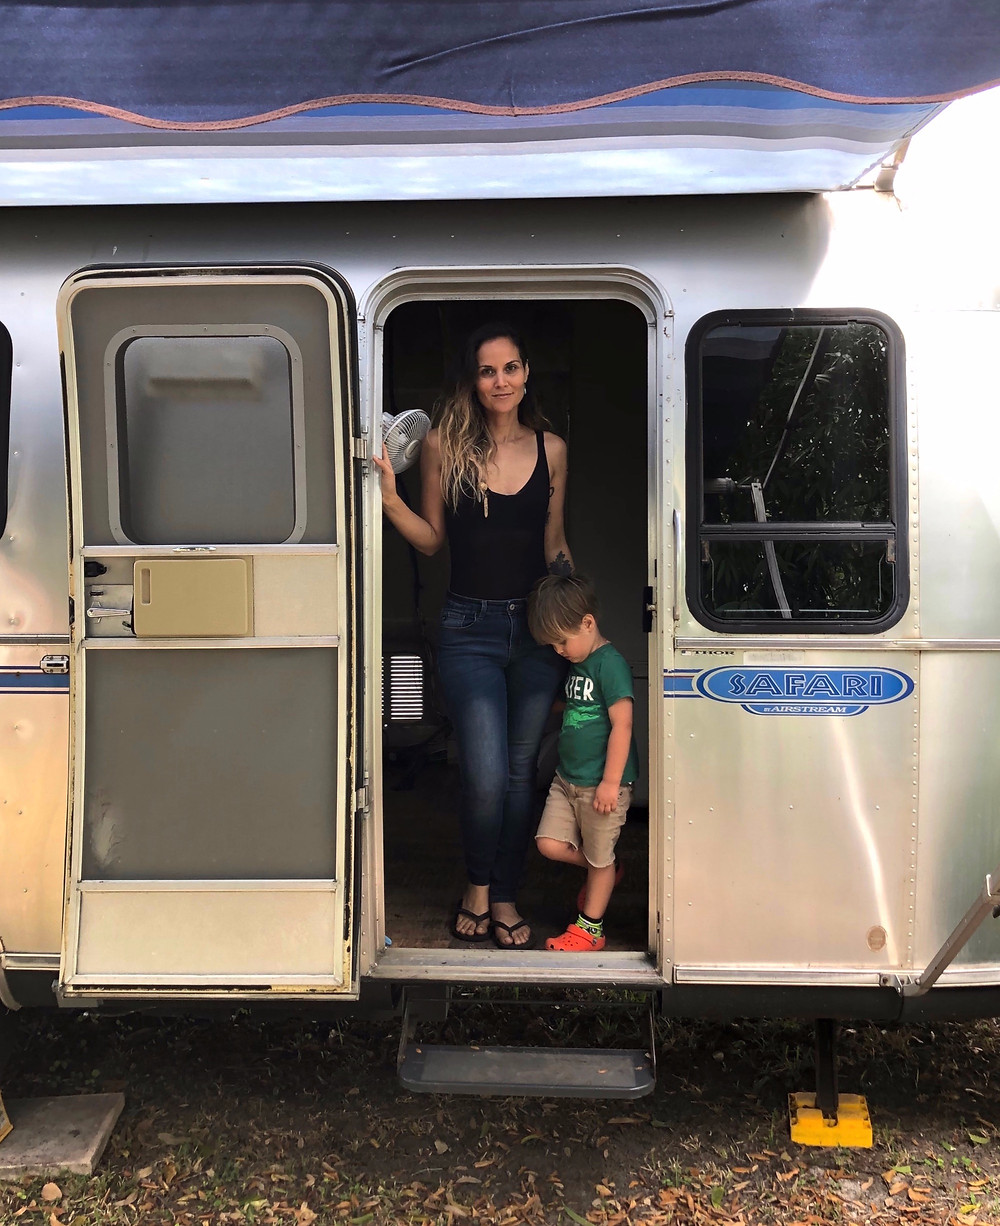 mother and child in airstream rv travel trailer during airstream renovation